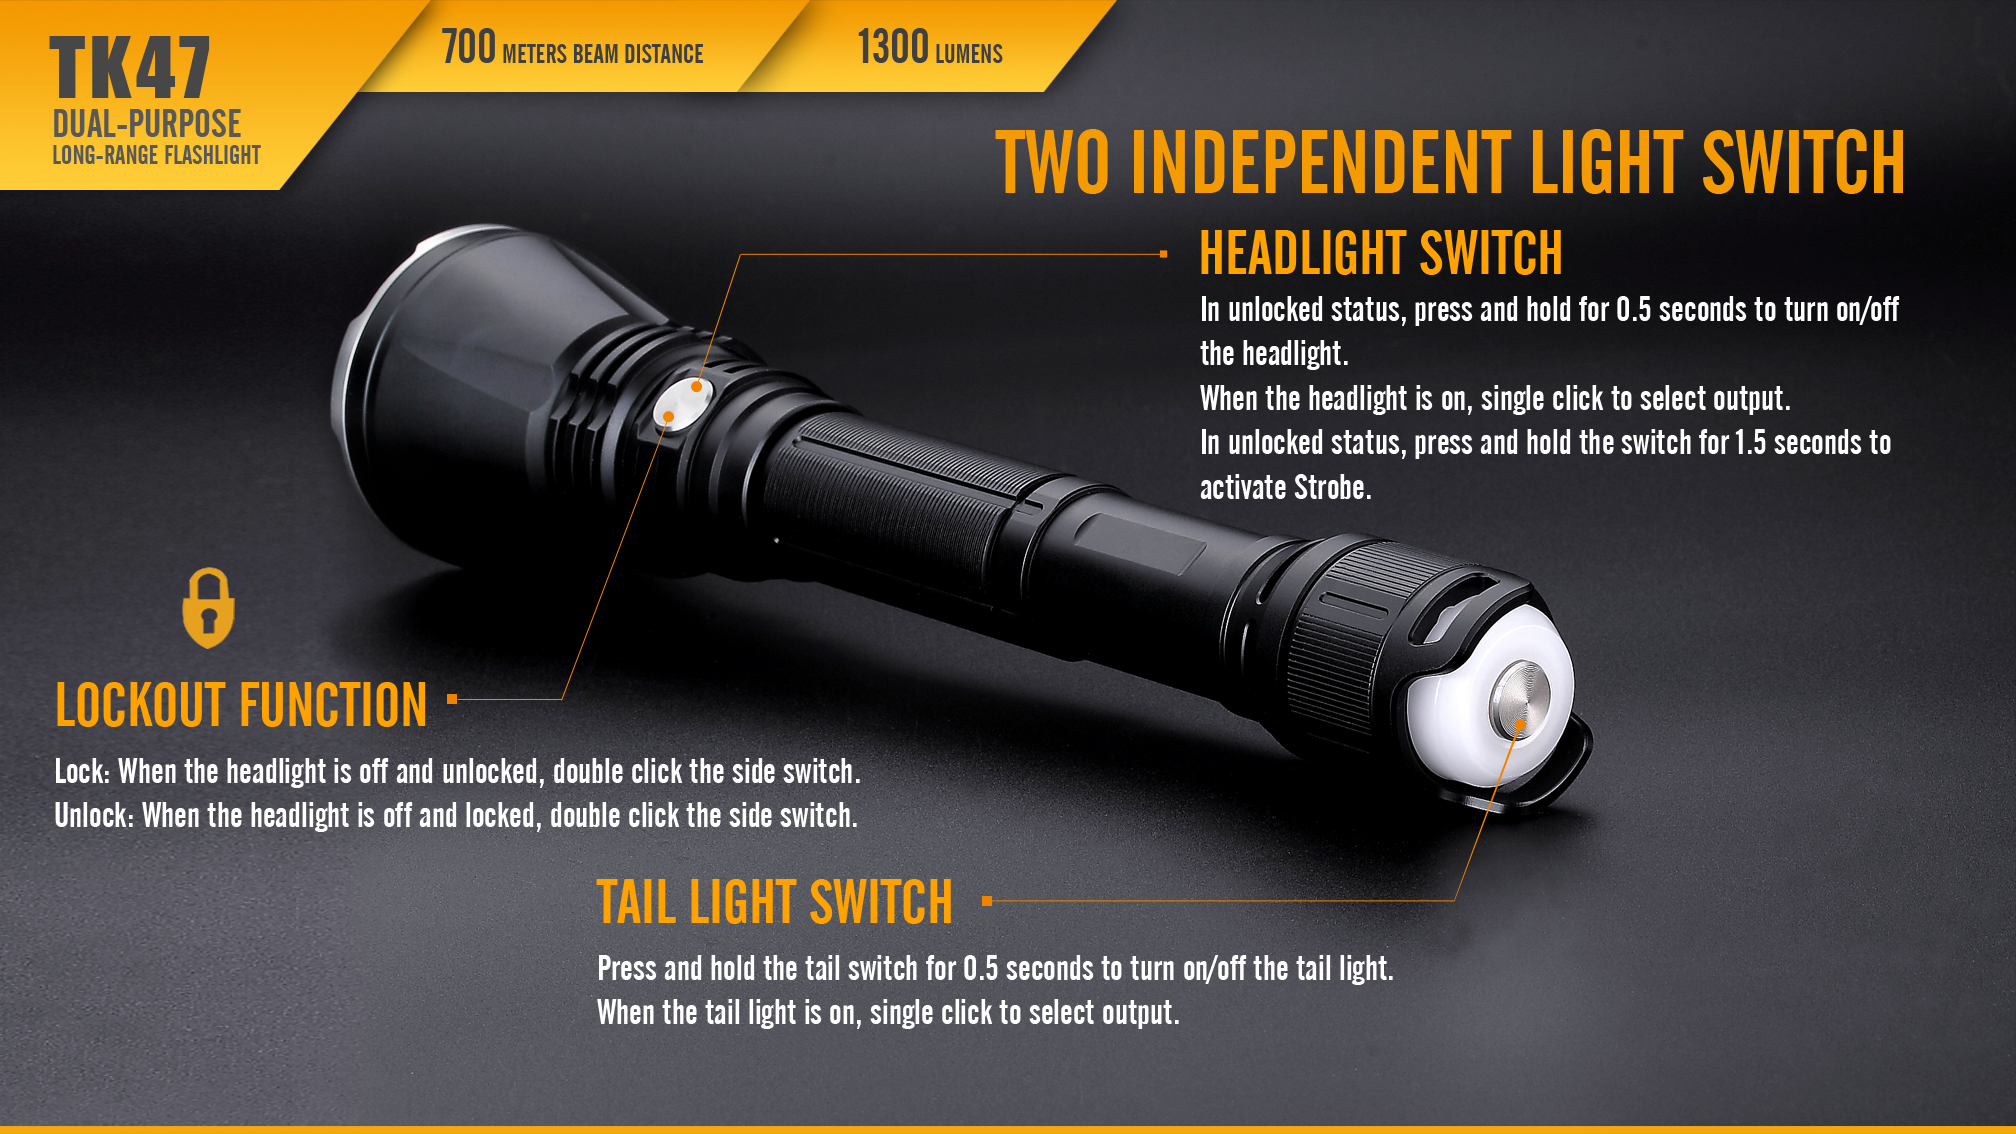 Fenix TK47 Dual-Purpose LED Flashlight Independent Switches